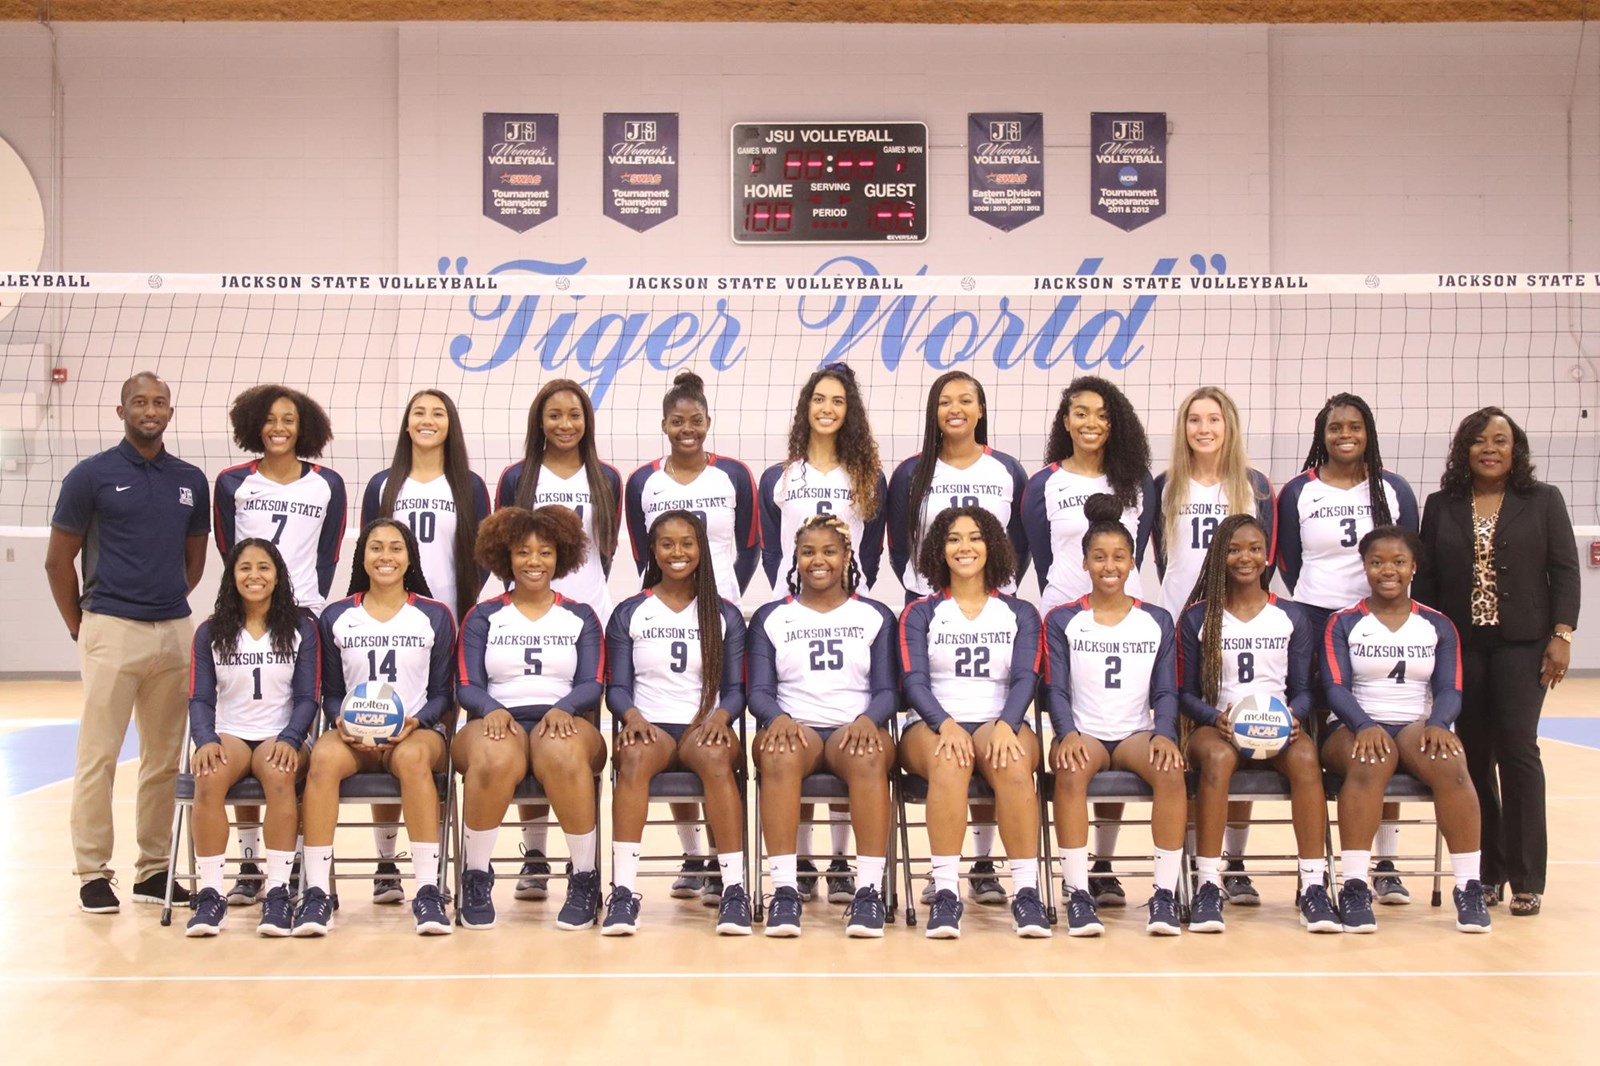 2019 Women S Volleyball Roster Jackson State University